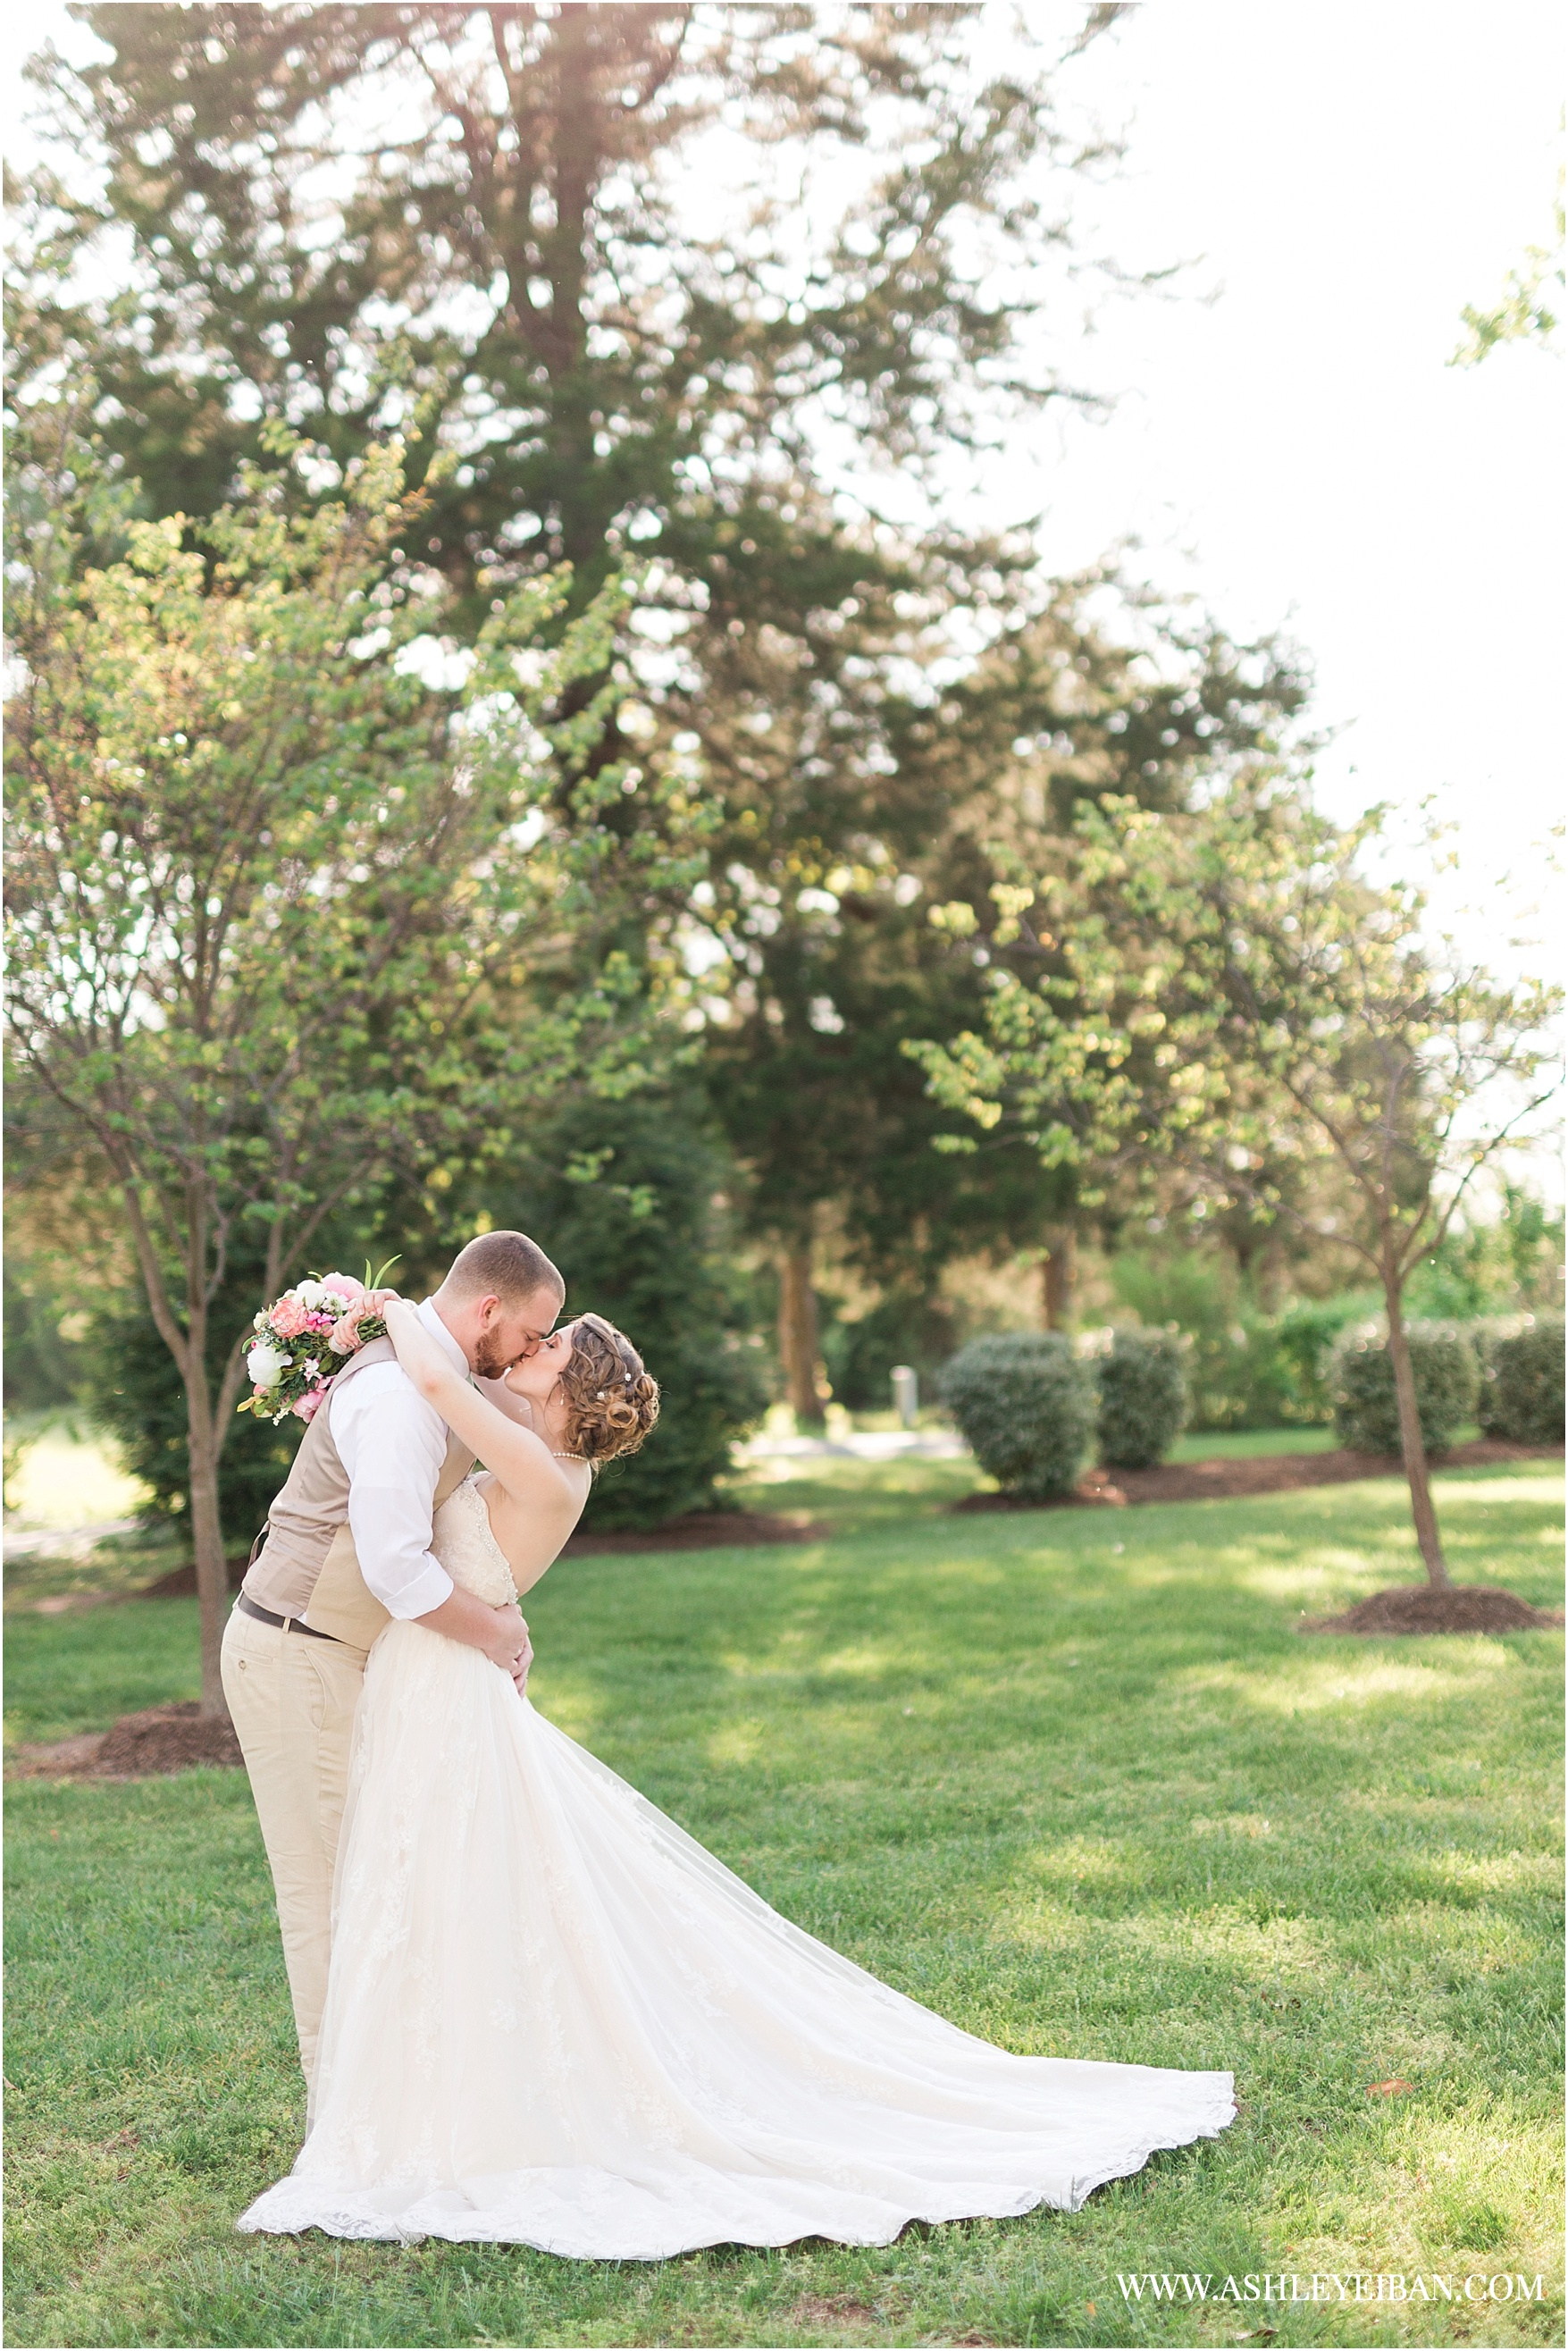 Wedding at The Trivium || Lynchburg Wedding Photographer || Central Virginia Wedding Photographer || Spring Wedding || Ashley Eiban Photography || www.ashleyeiban.com